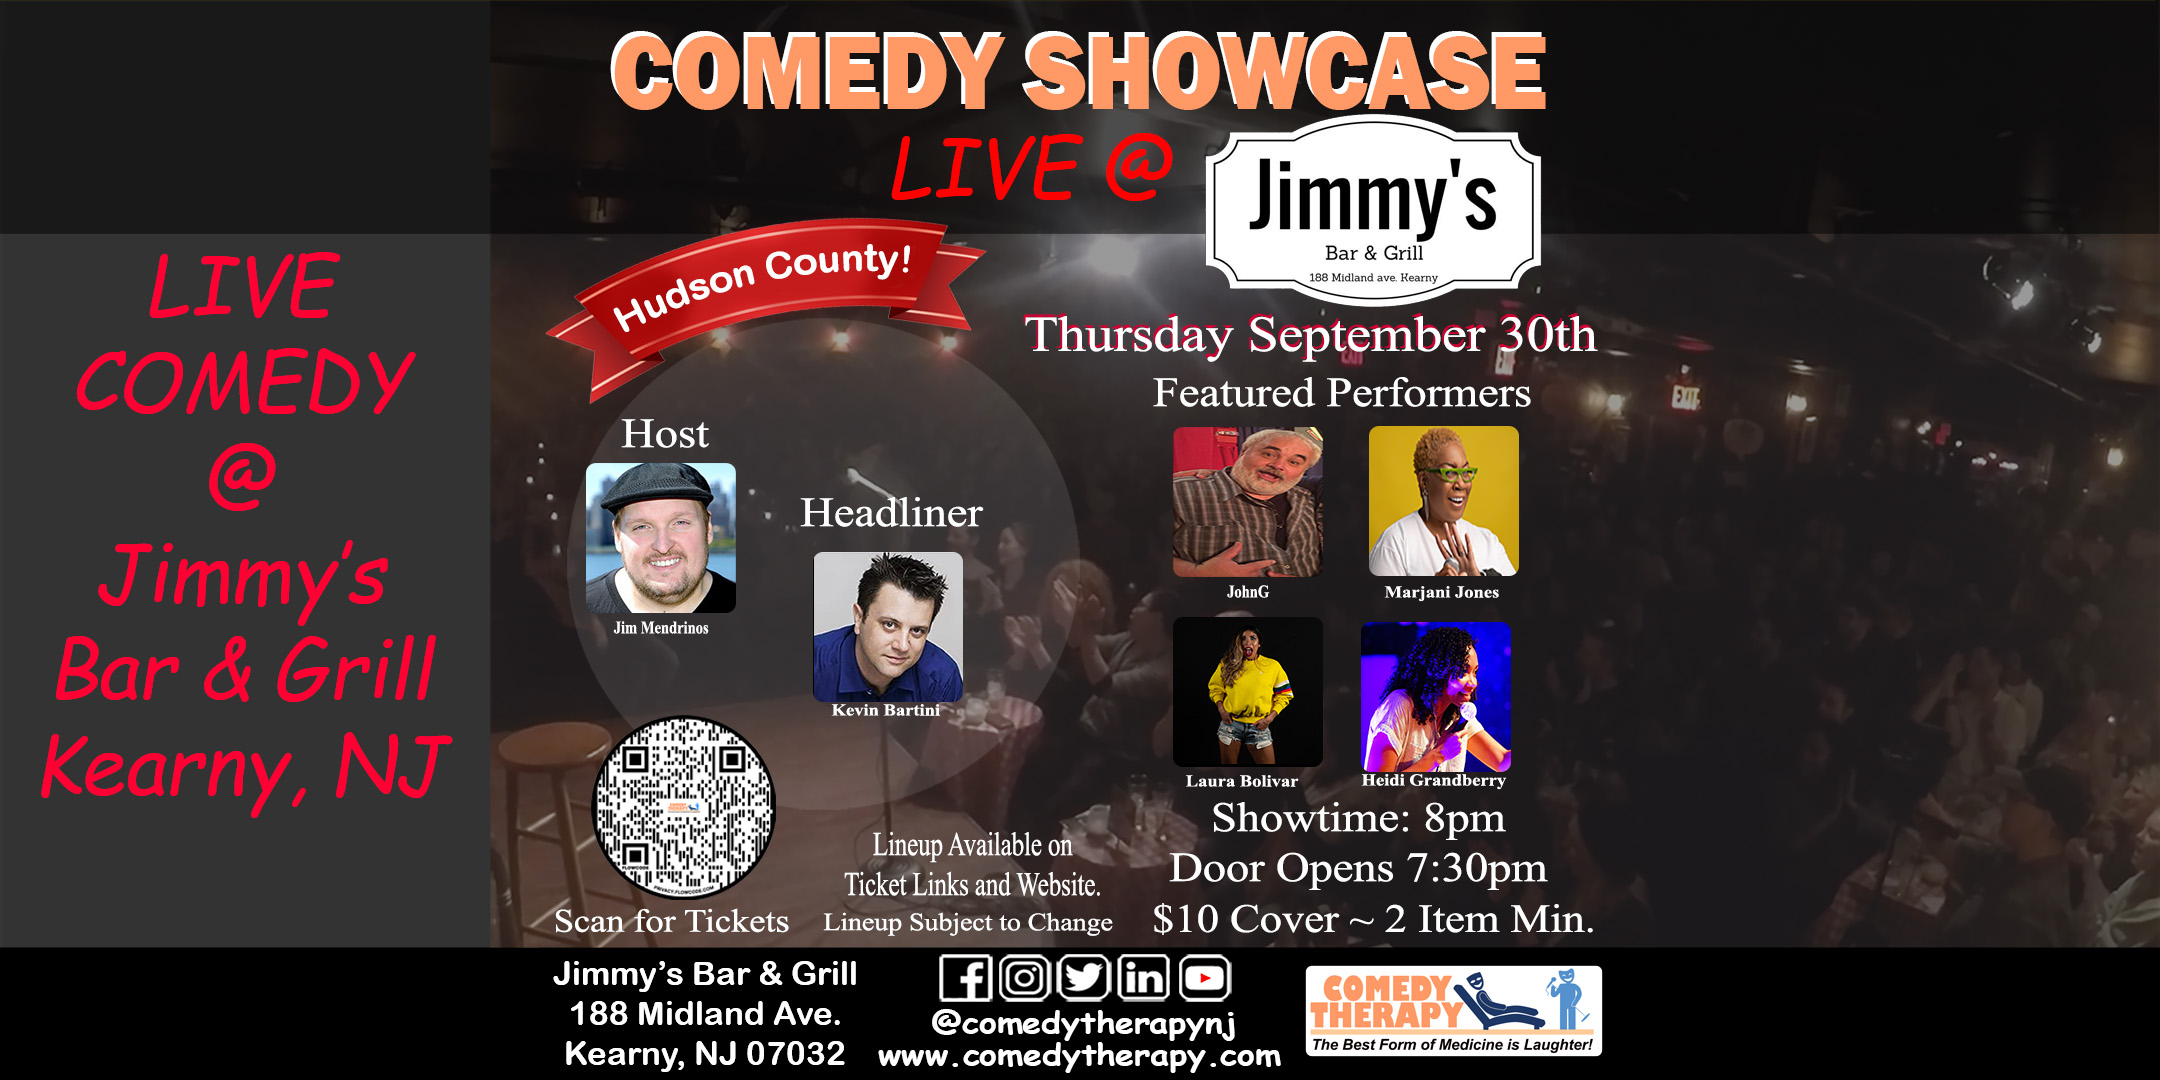 Jimmy's Bar & Grill Sept 30th